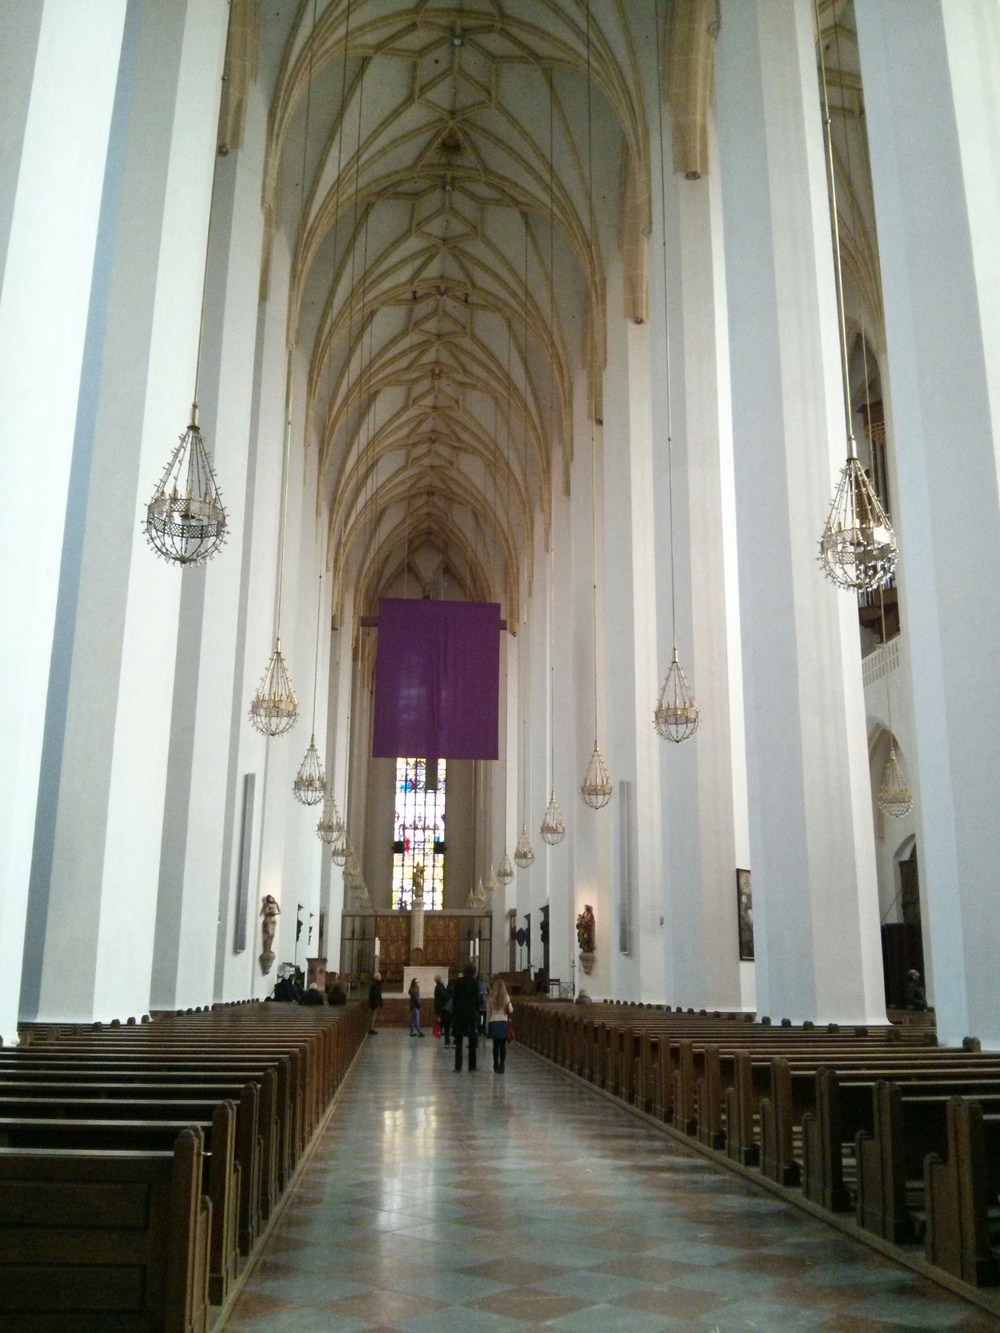 Inside the Frauenkirche